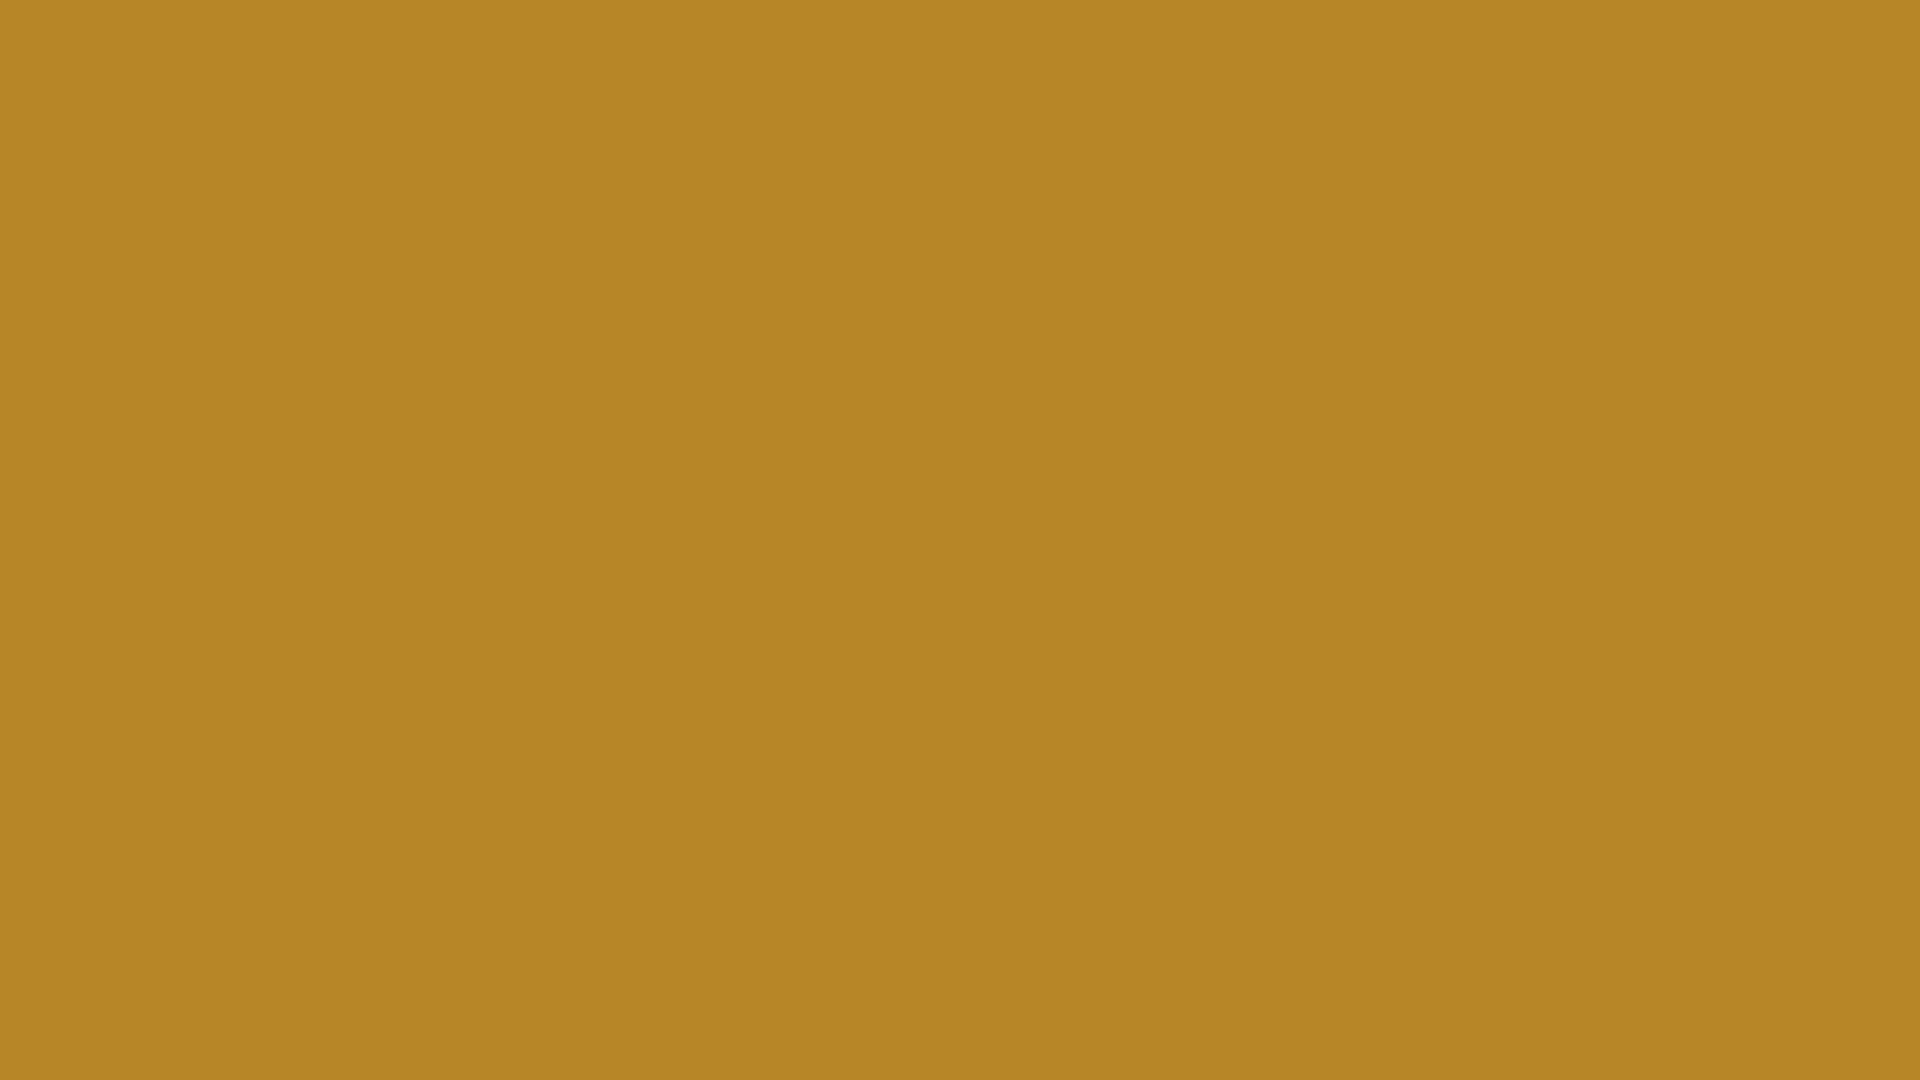 1920x1080 University Of California Gold Solid Color Background